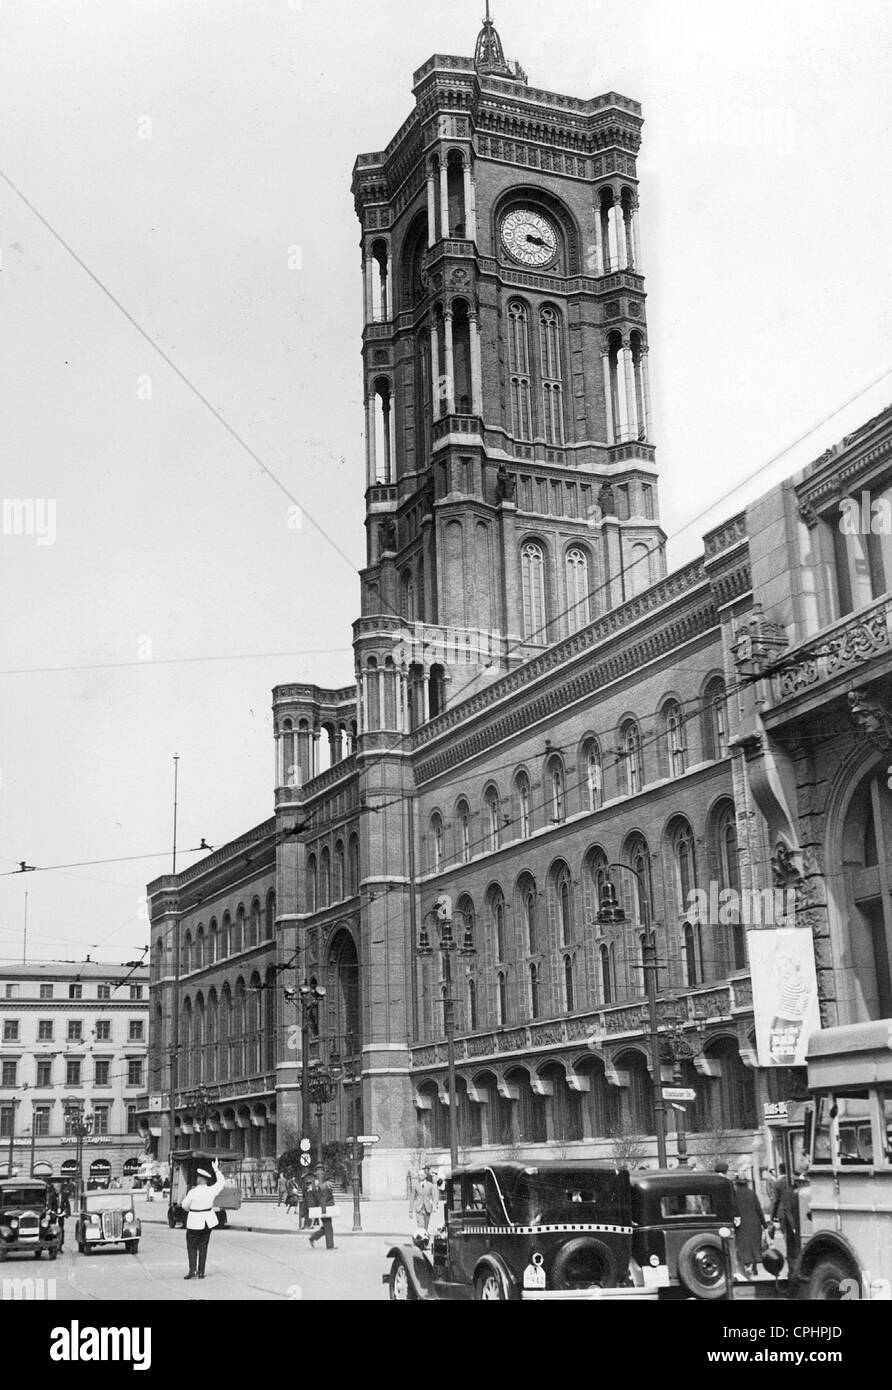 Rotes Rathaus in Berlin, 1937 - Stock Image